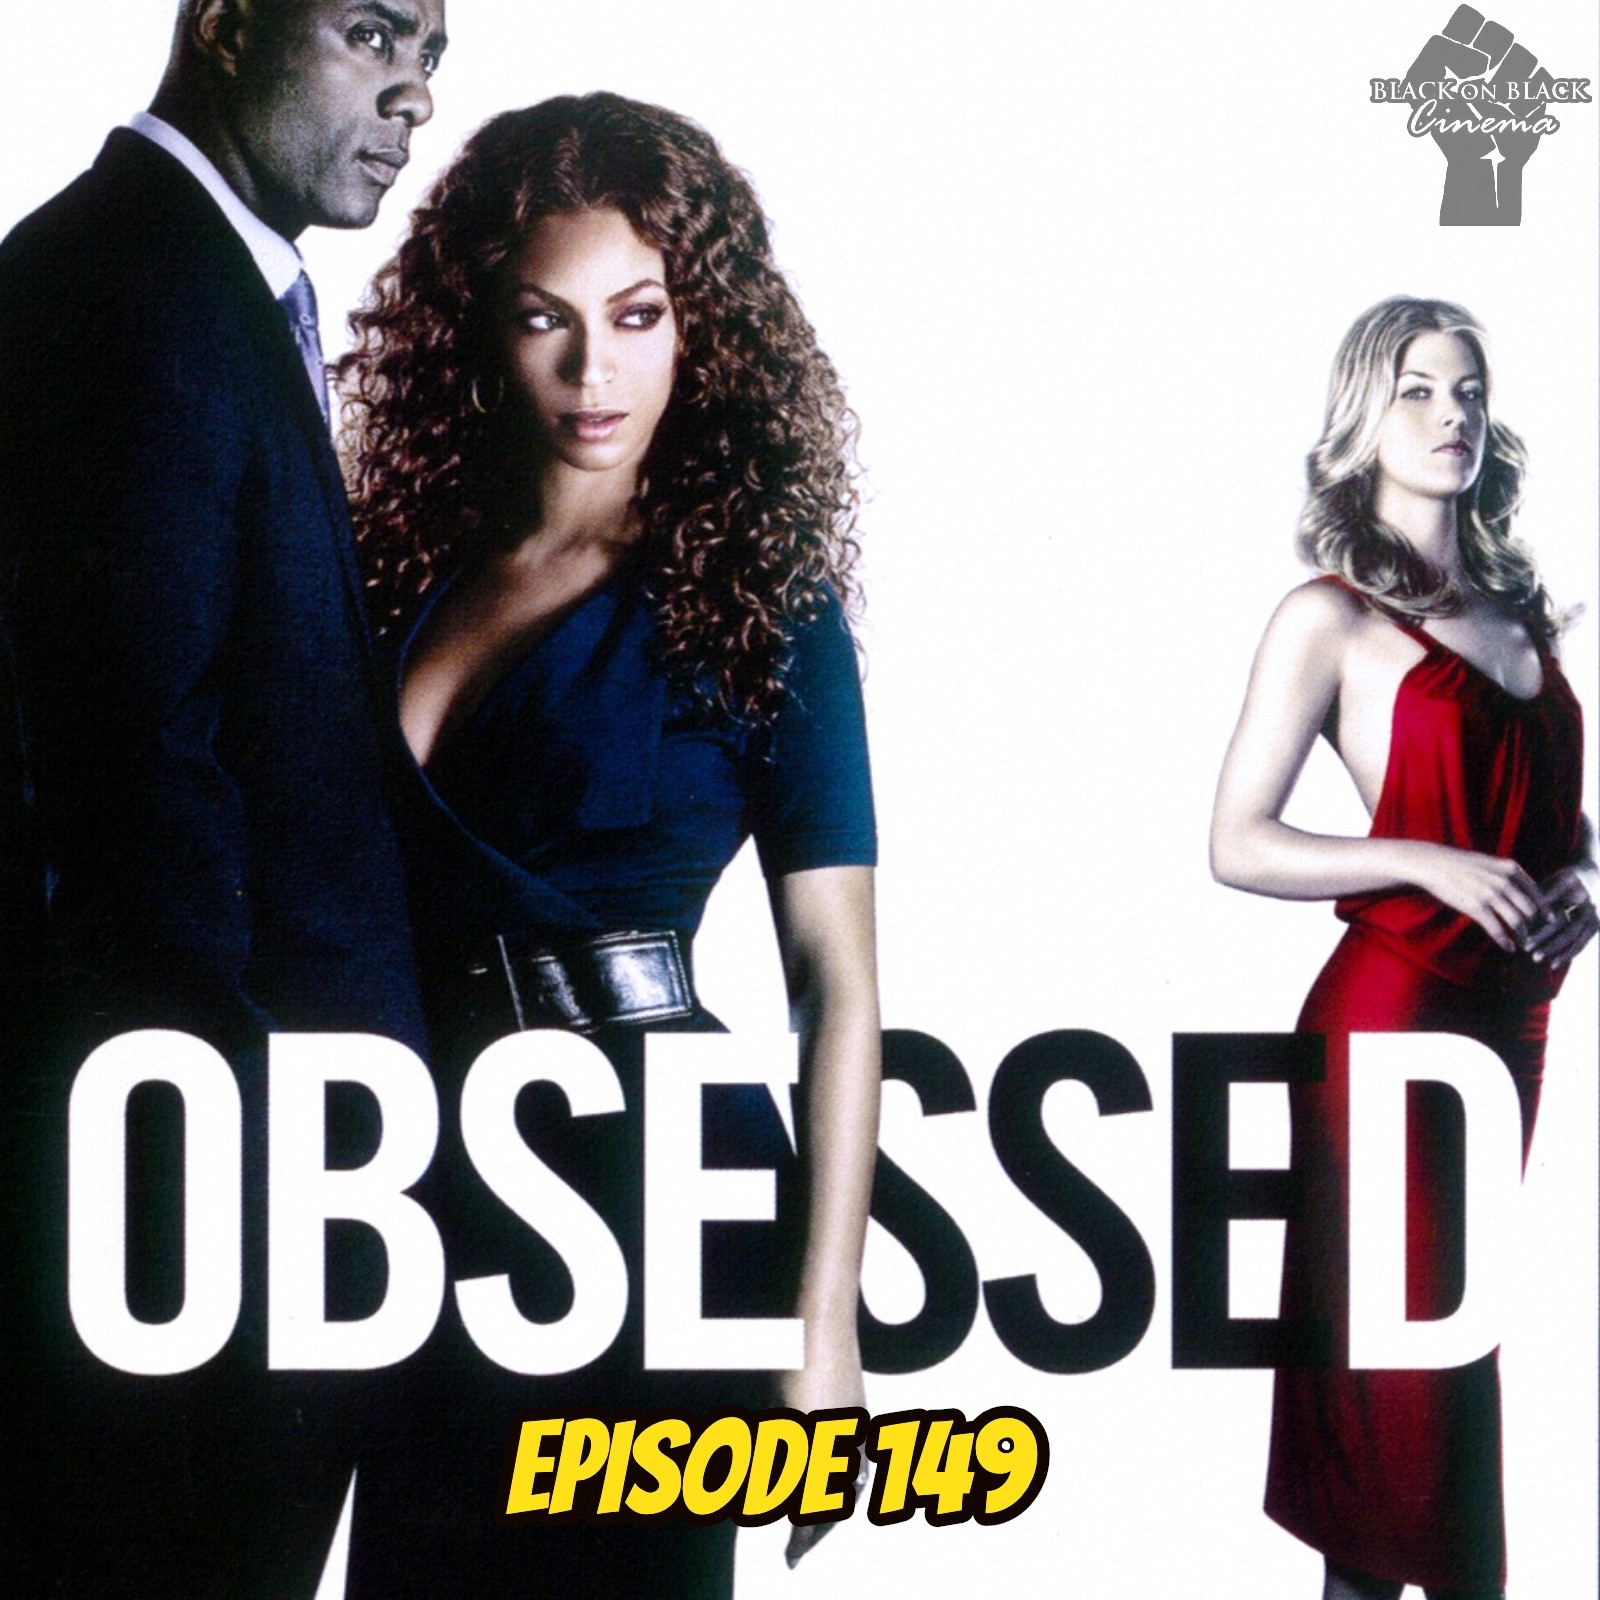 Obsessed - Episode 149